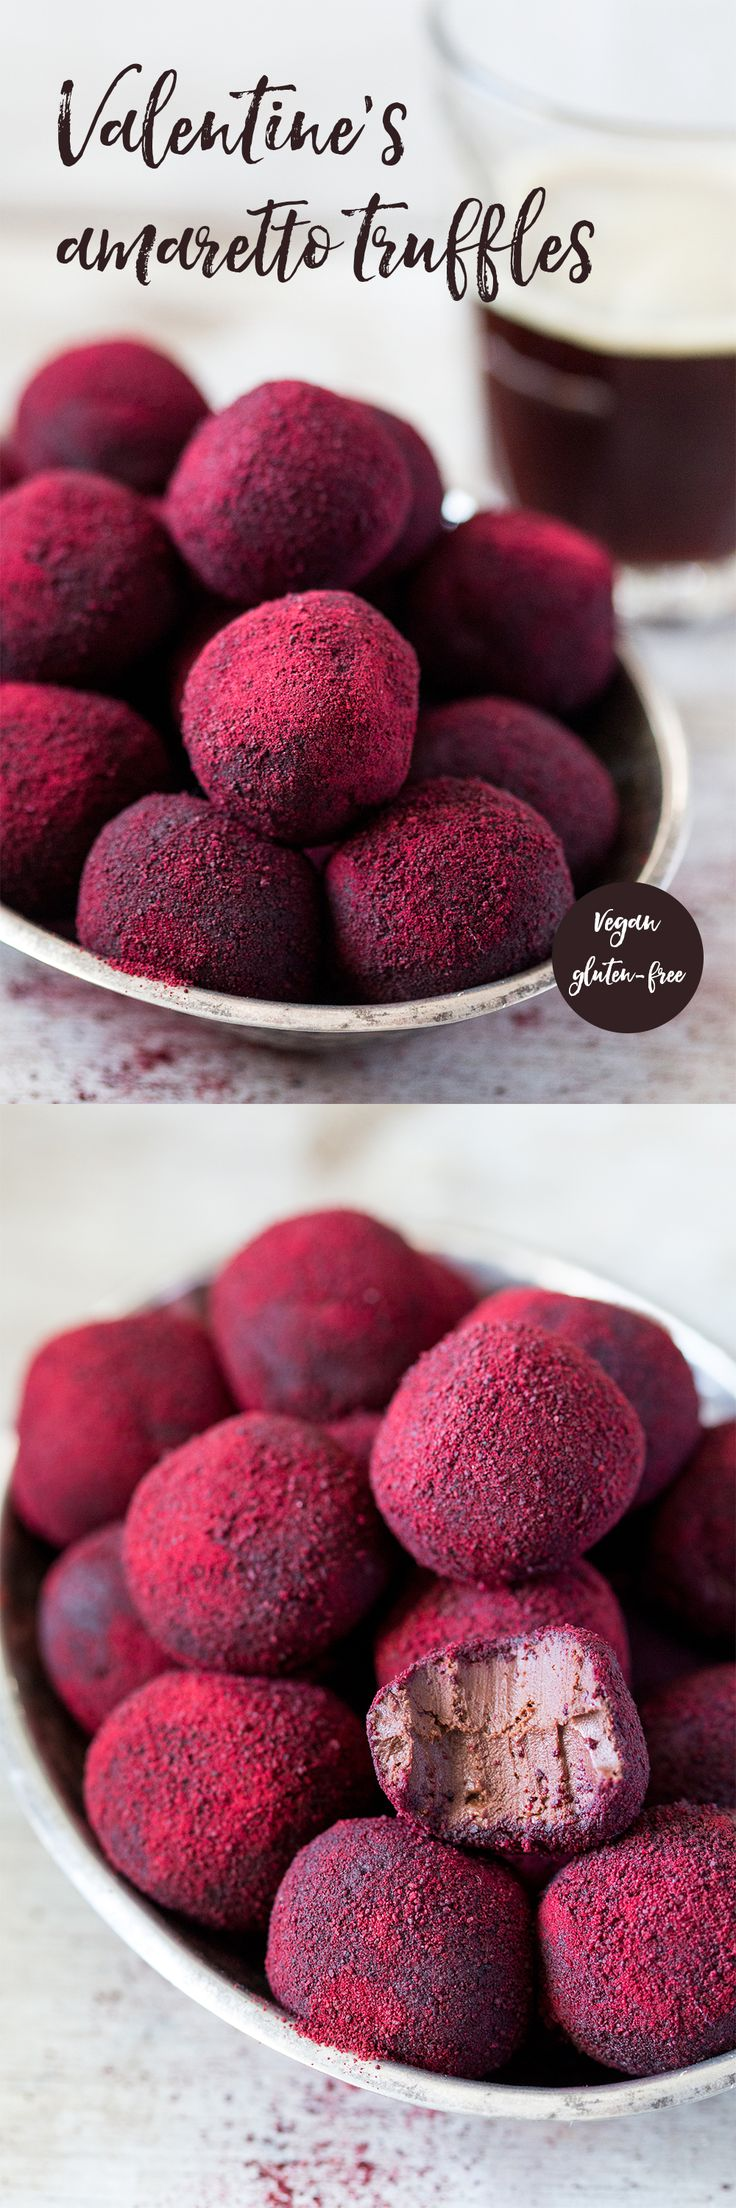 buy beetroot powder online at www.herbandspiceco.co.uk